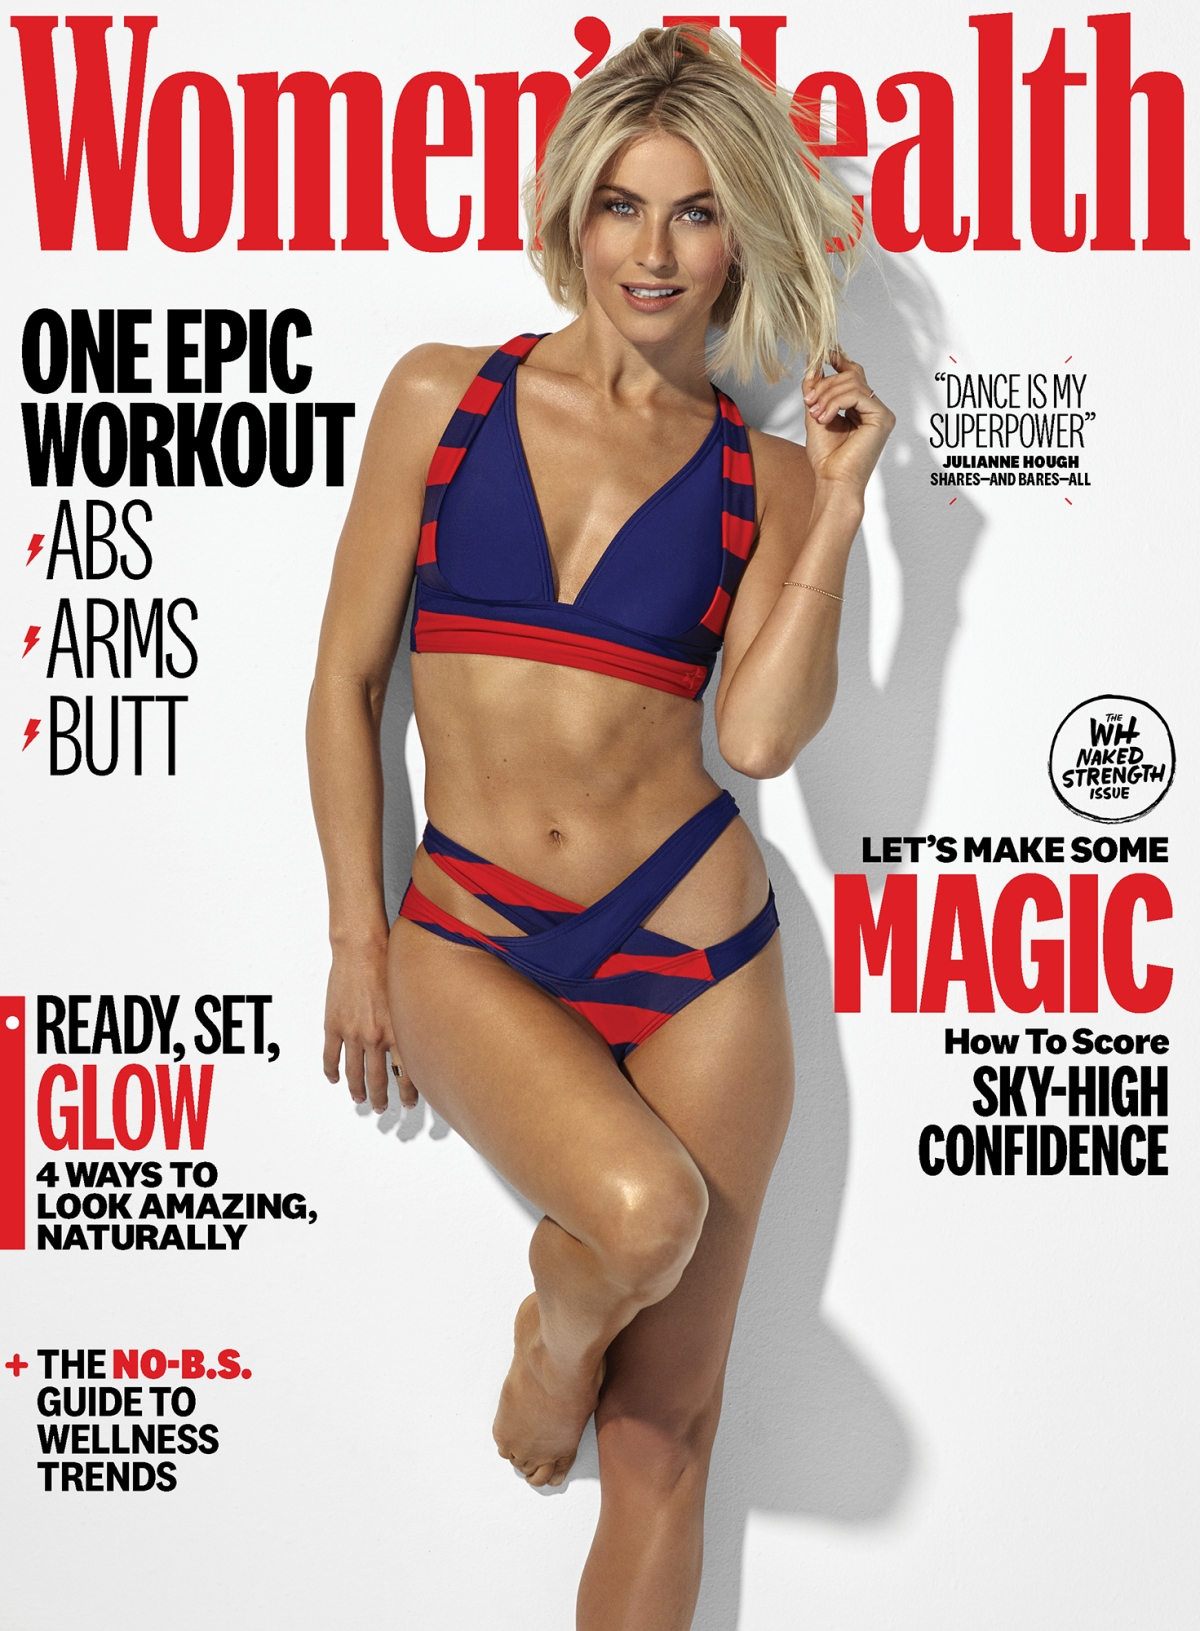 All Nude Image julianne hough nude on women's health cover: 'naked strength